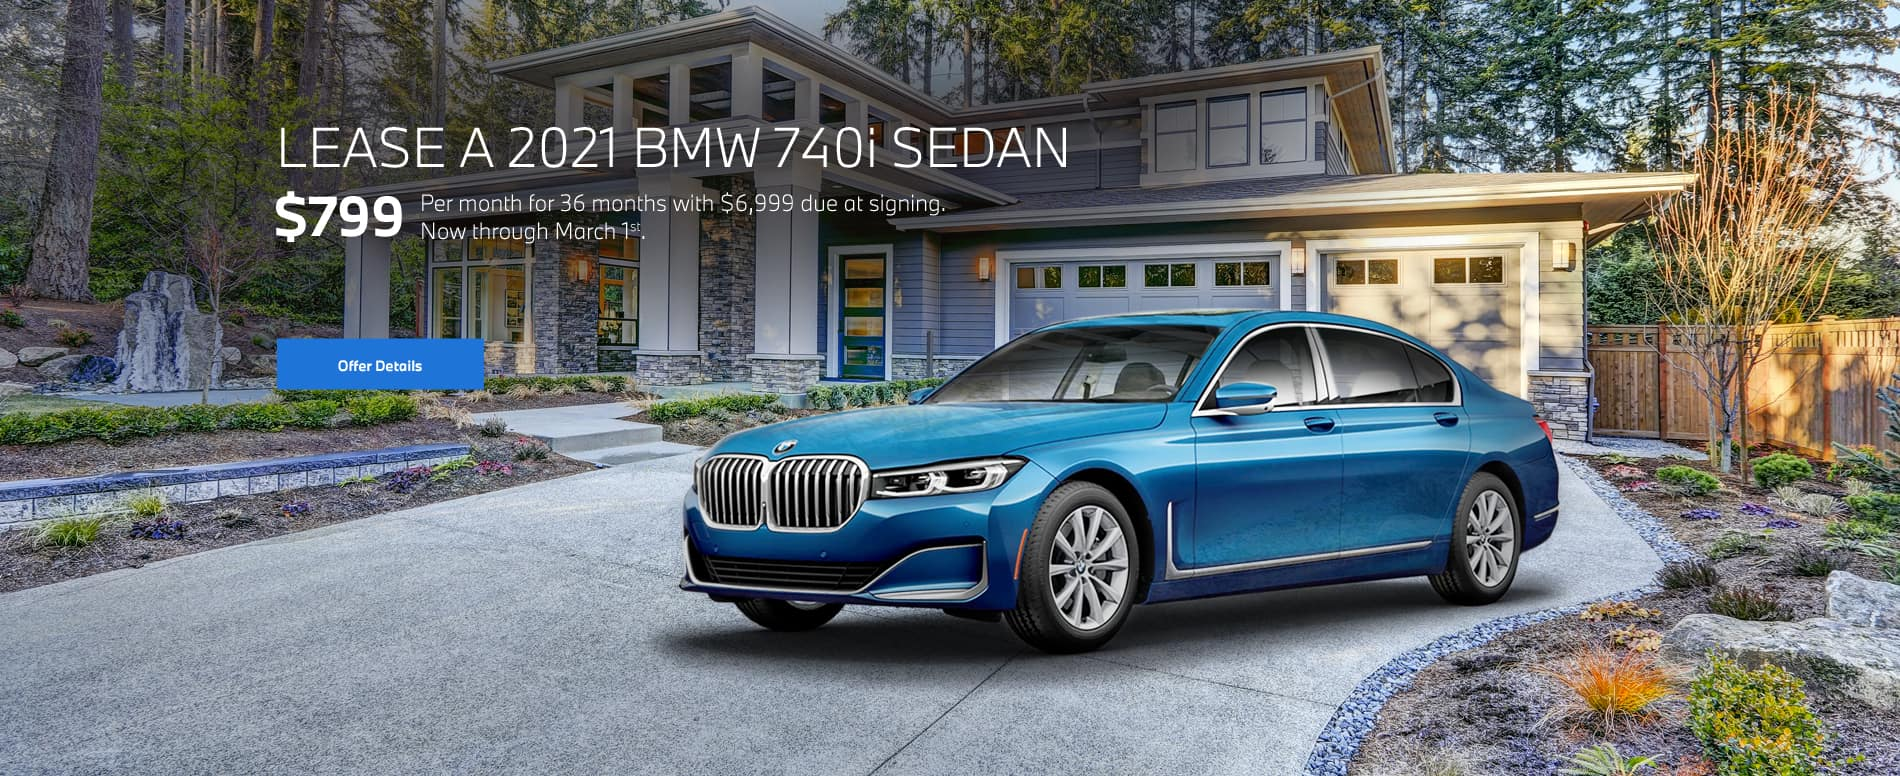 Blue 7 series parked in house driveway